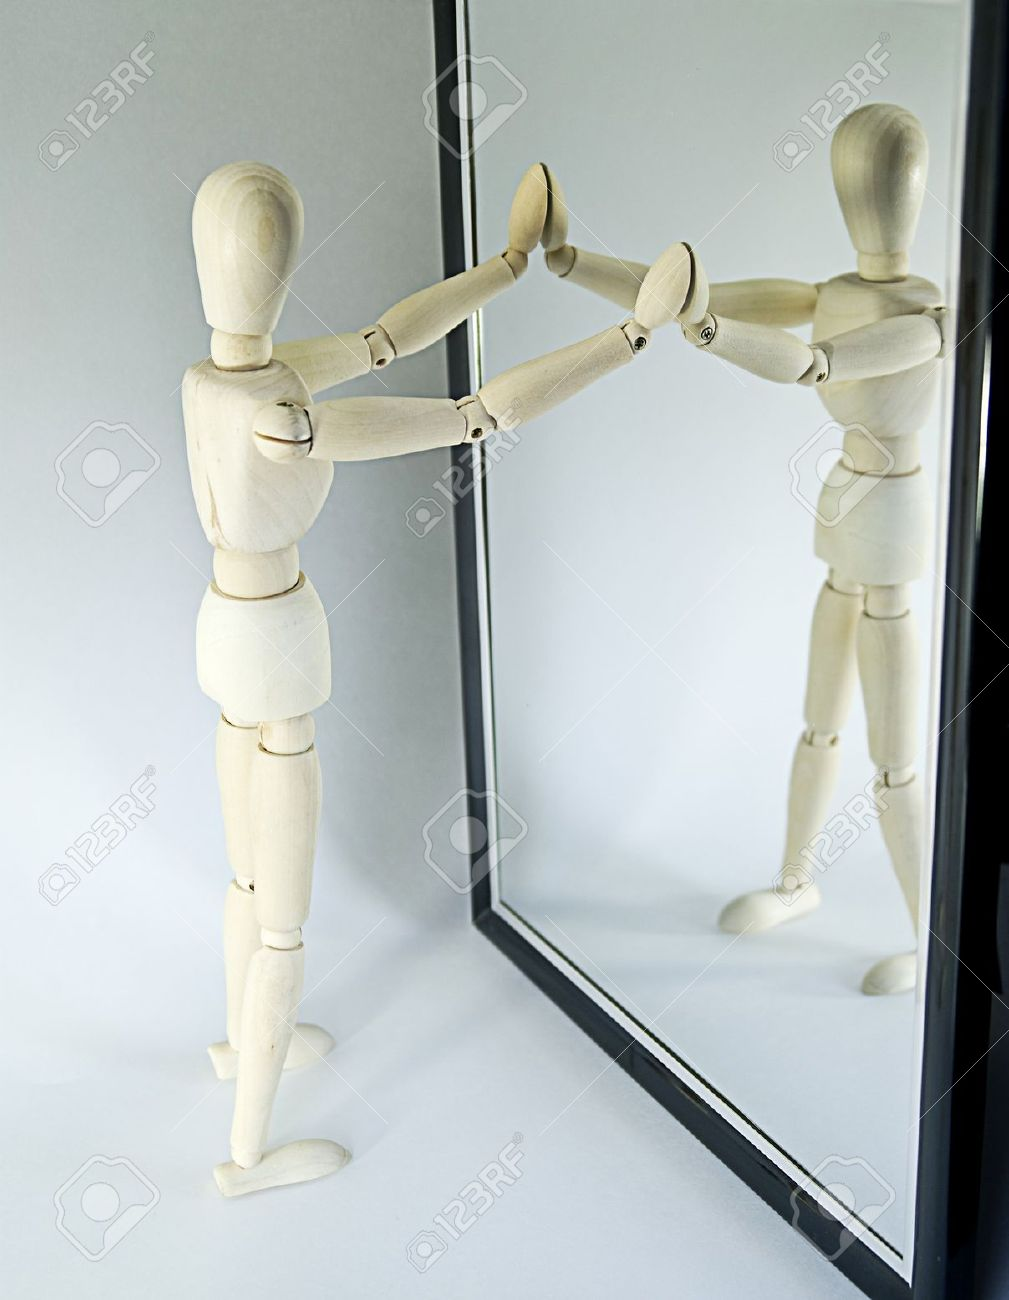 Closeup of wooden mannequin looking in full length mirror, white studio background. - 7334327